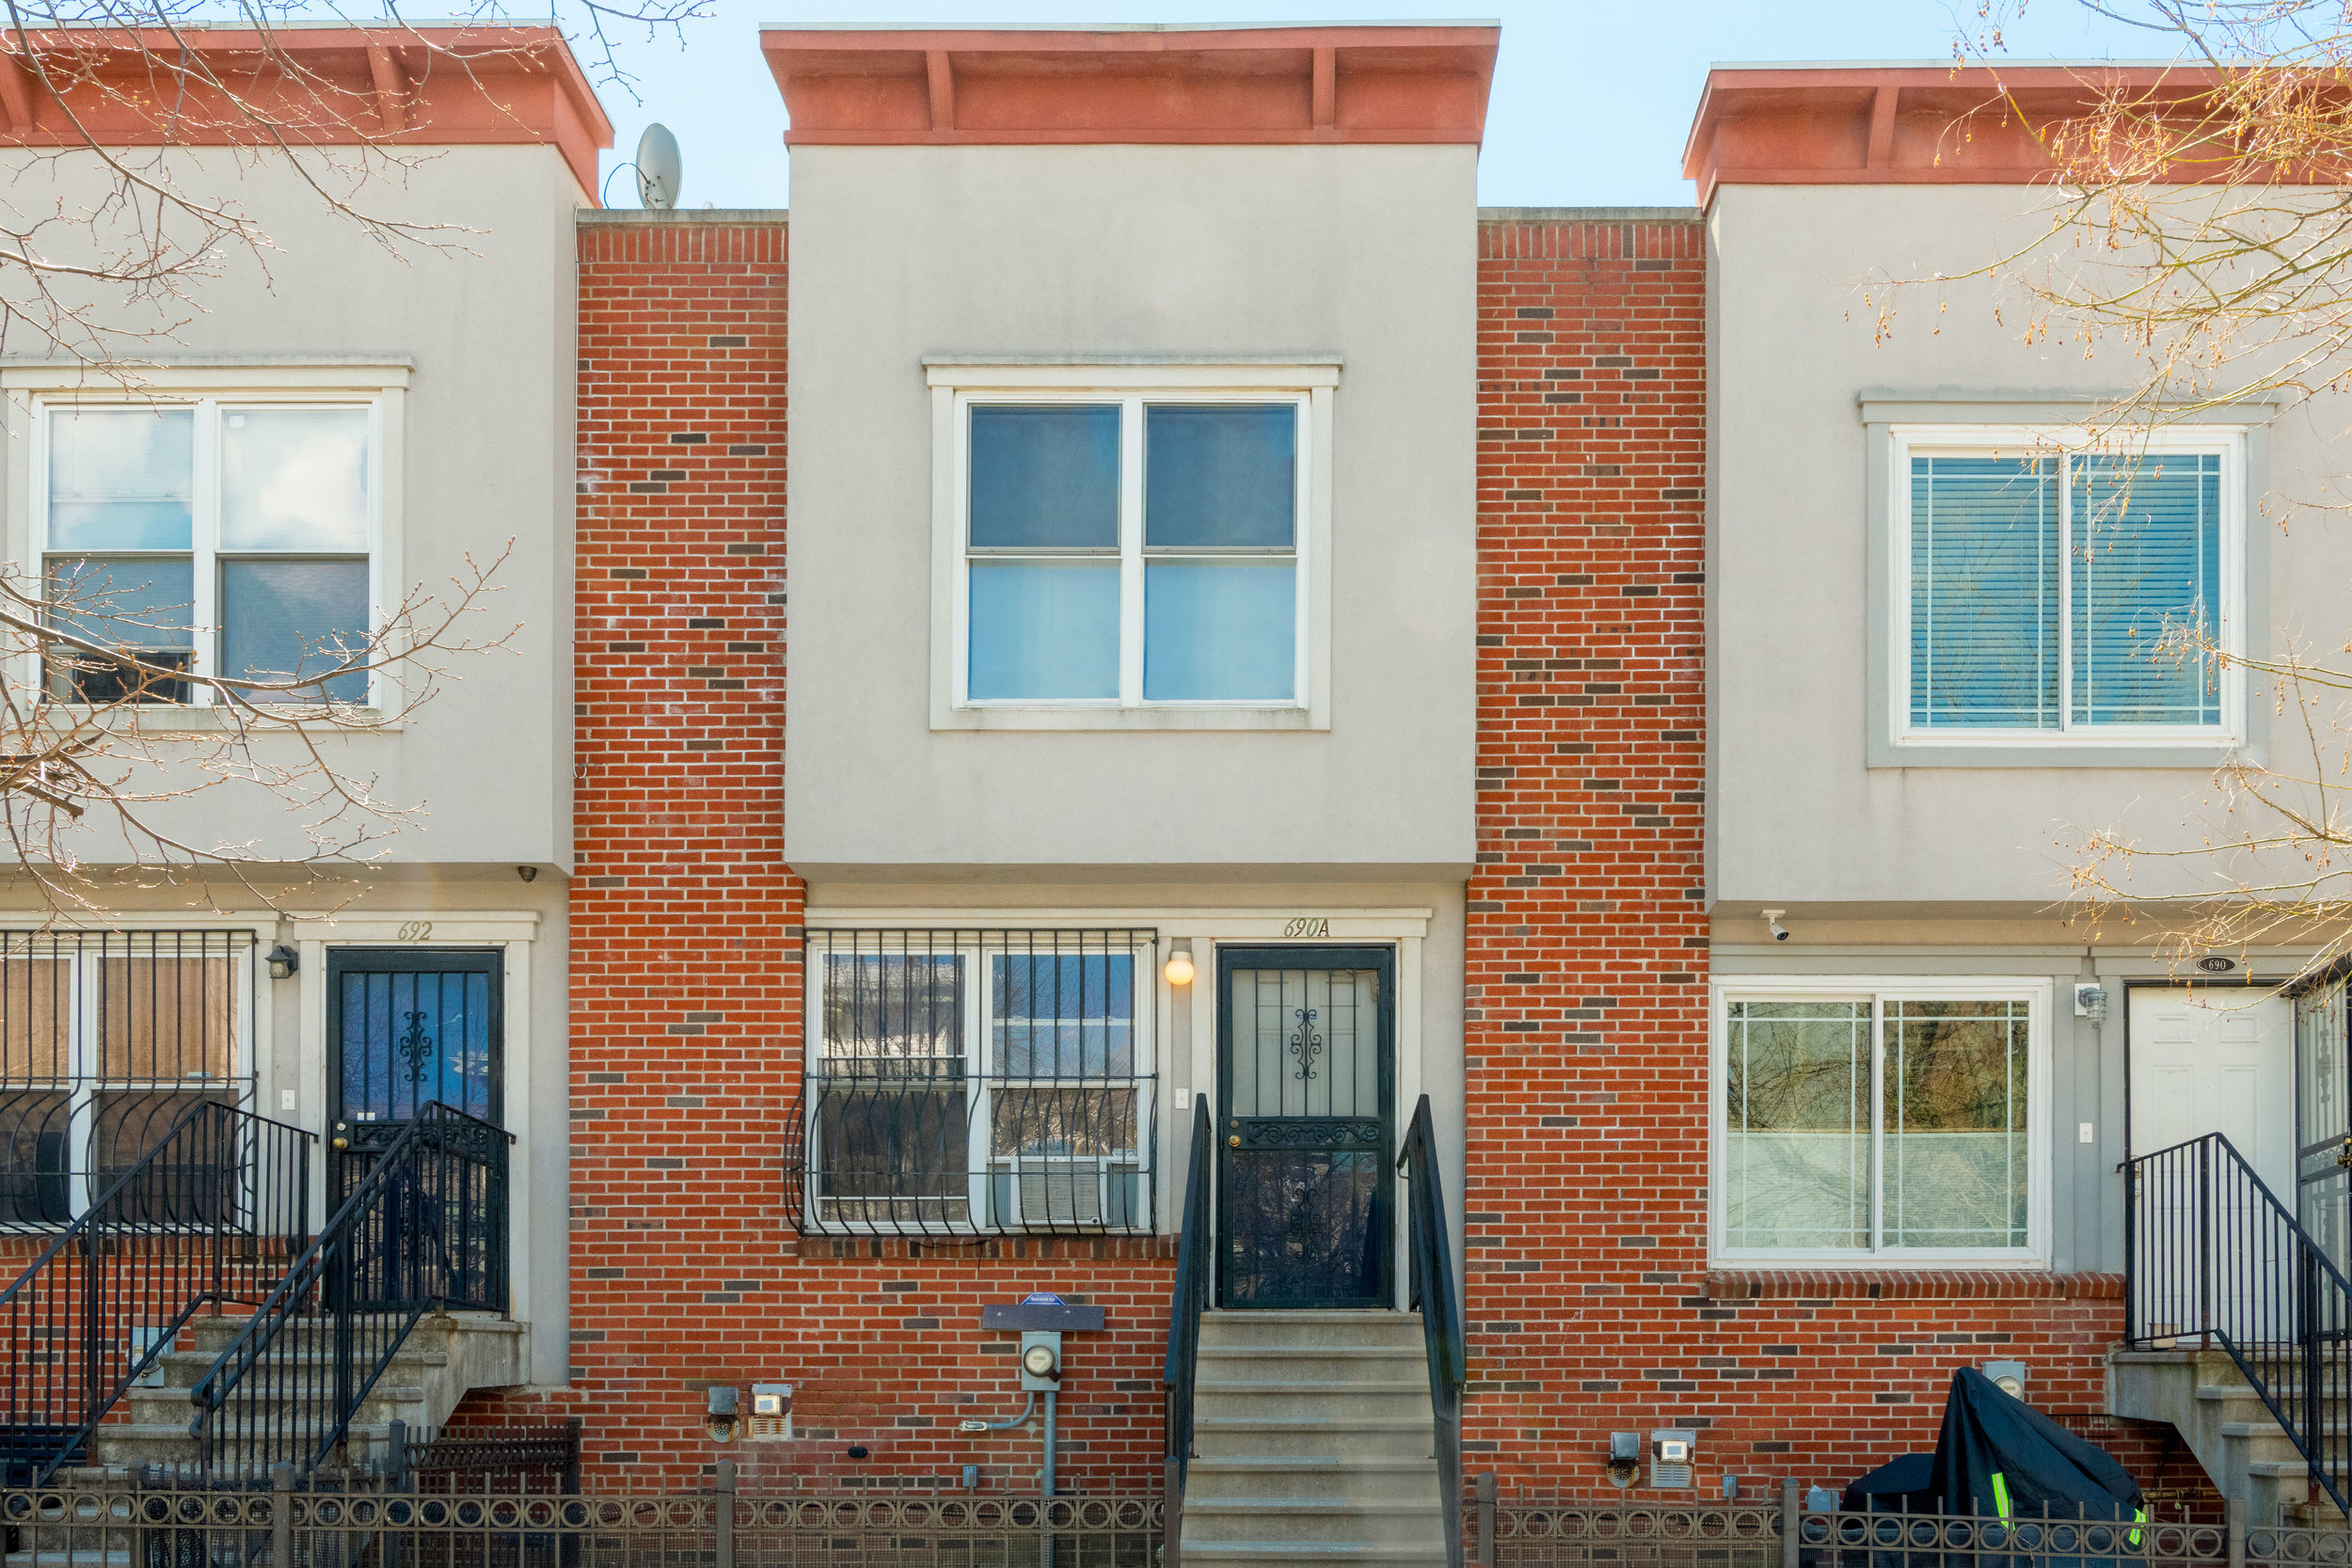 690A Willoughby ave - $700,000 - Bedford-Stuyvesant